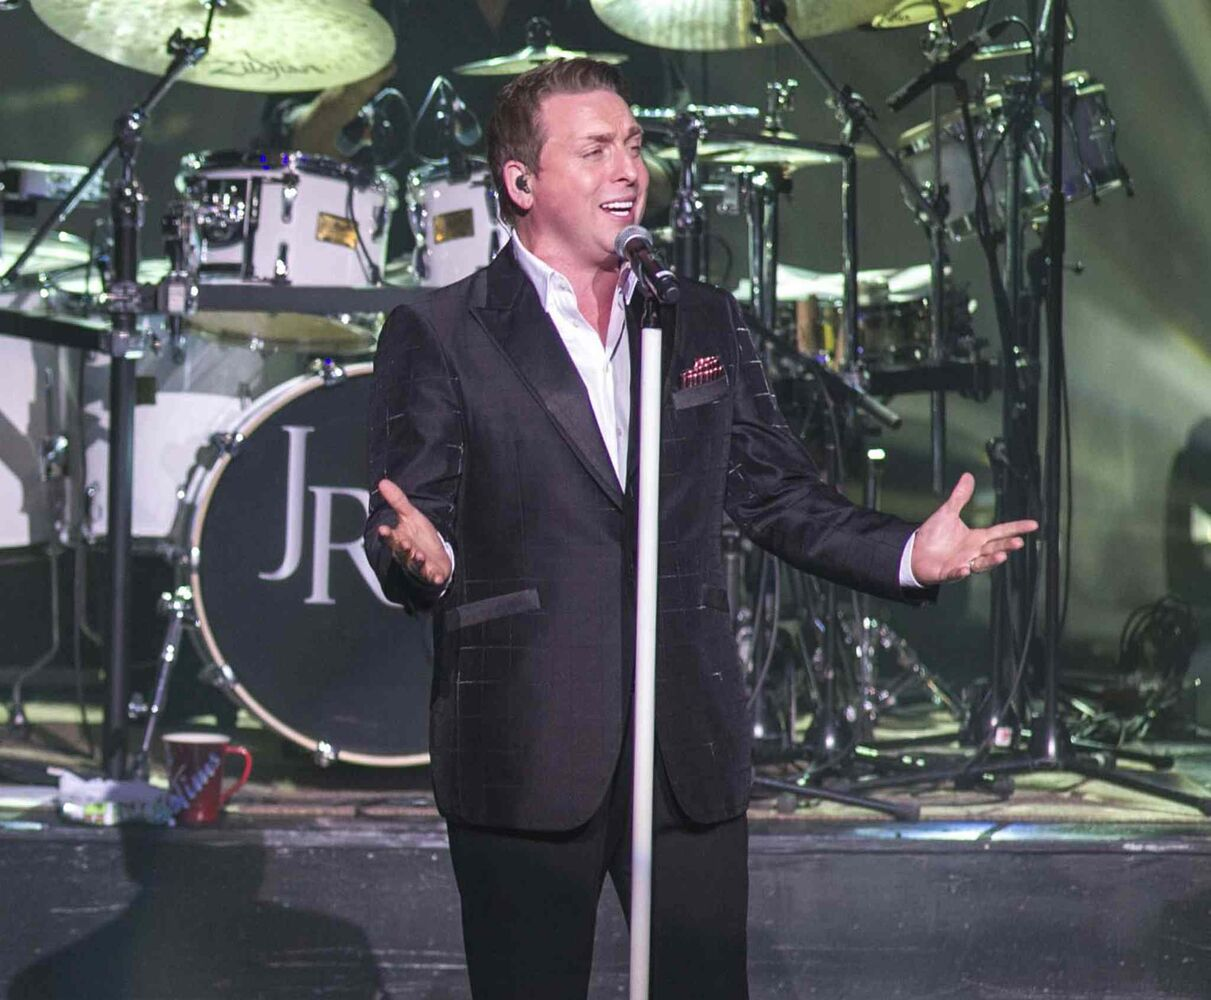 Johnny Reid belts out a Christmas tune. (DAVID LIPNOWSKI / WINNIPEG FREE PRESS)